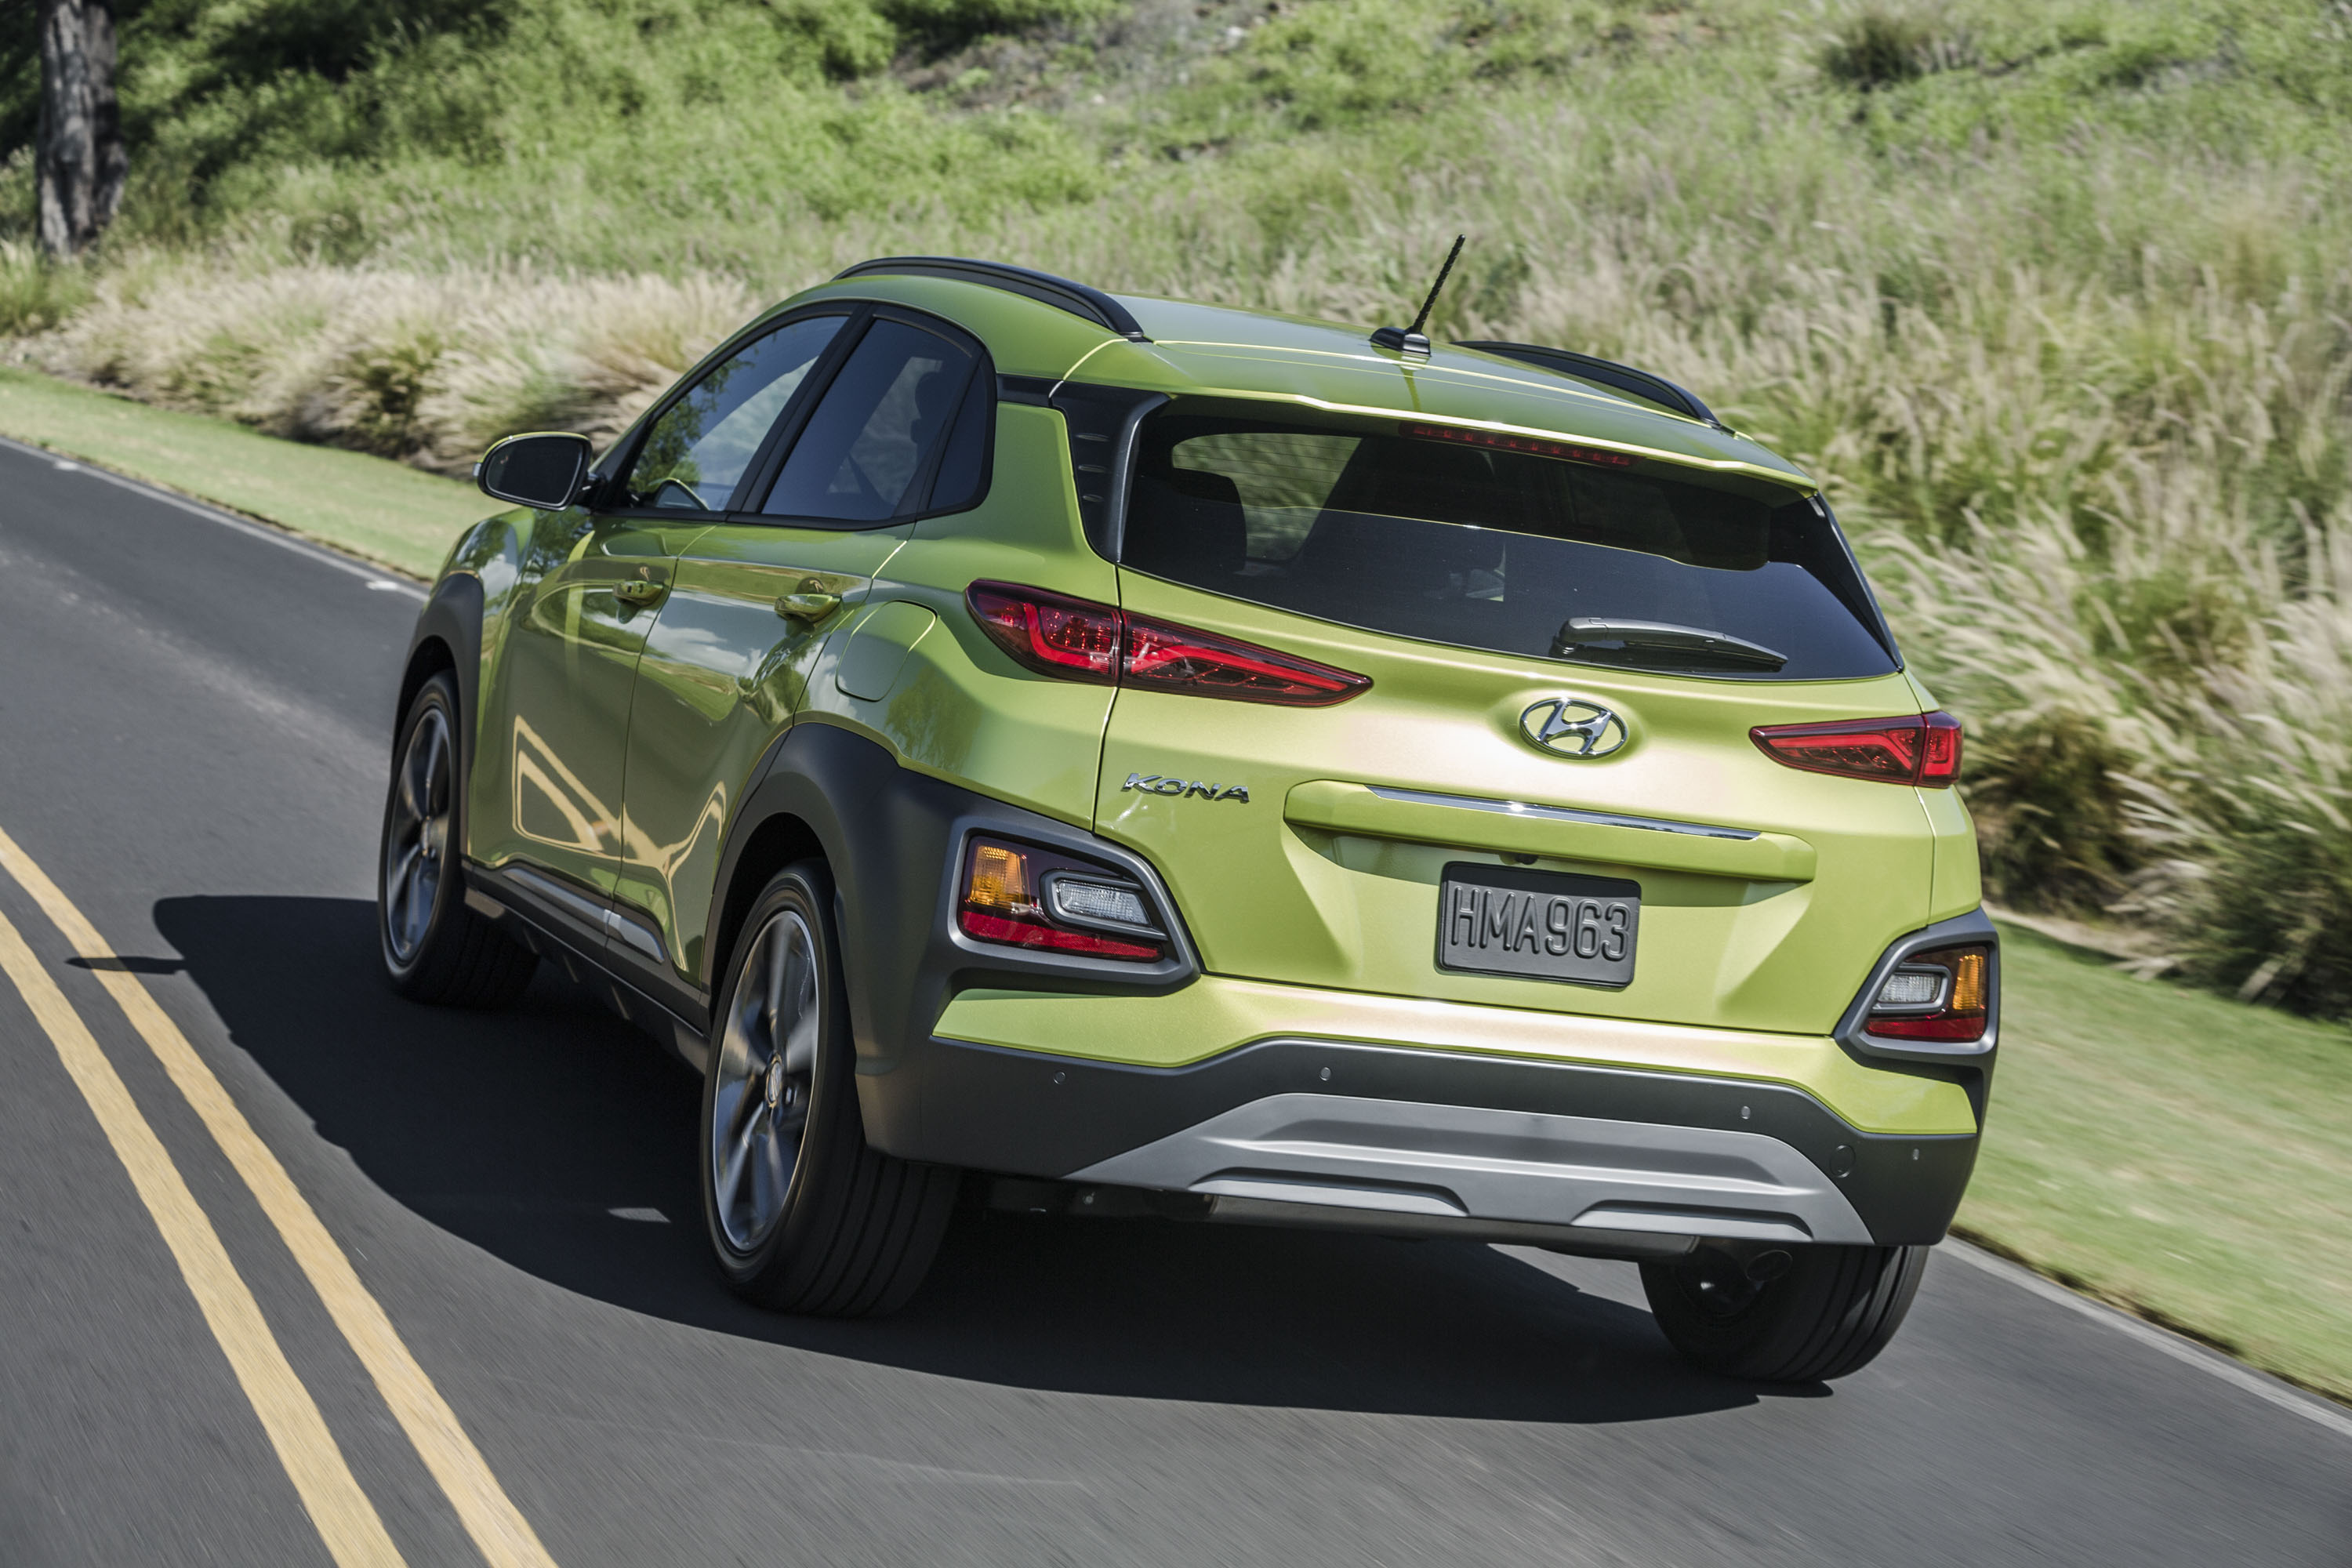 kona hawaii hyundai heres and a here it suv s of glimpse newsfeatures newest is hyundais named